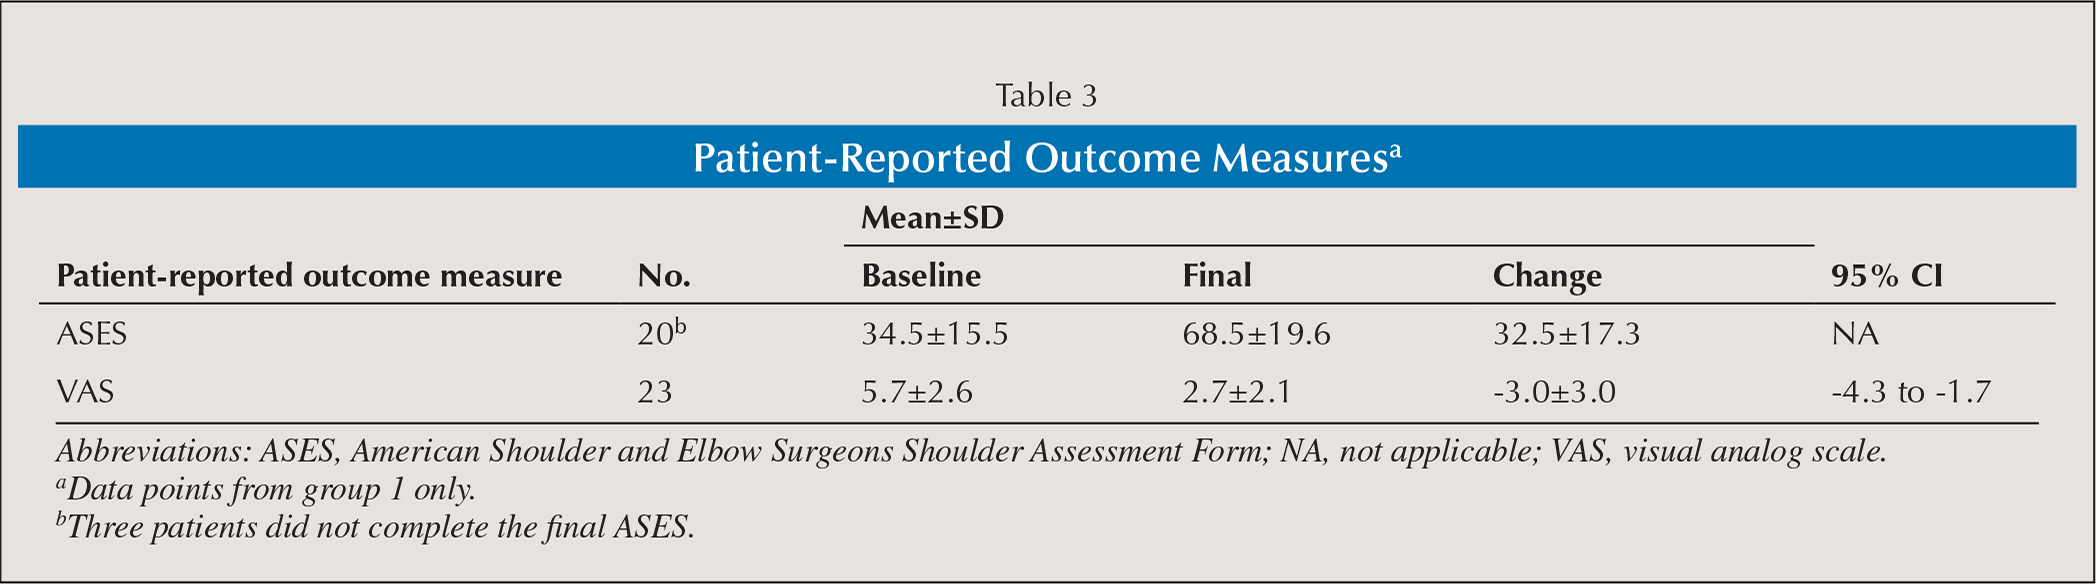 Patient-Reported Outcome Measuresa